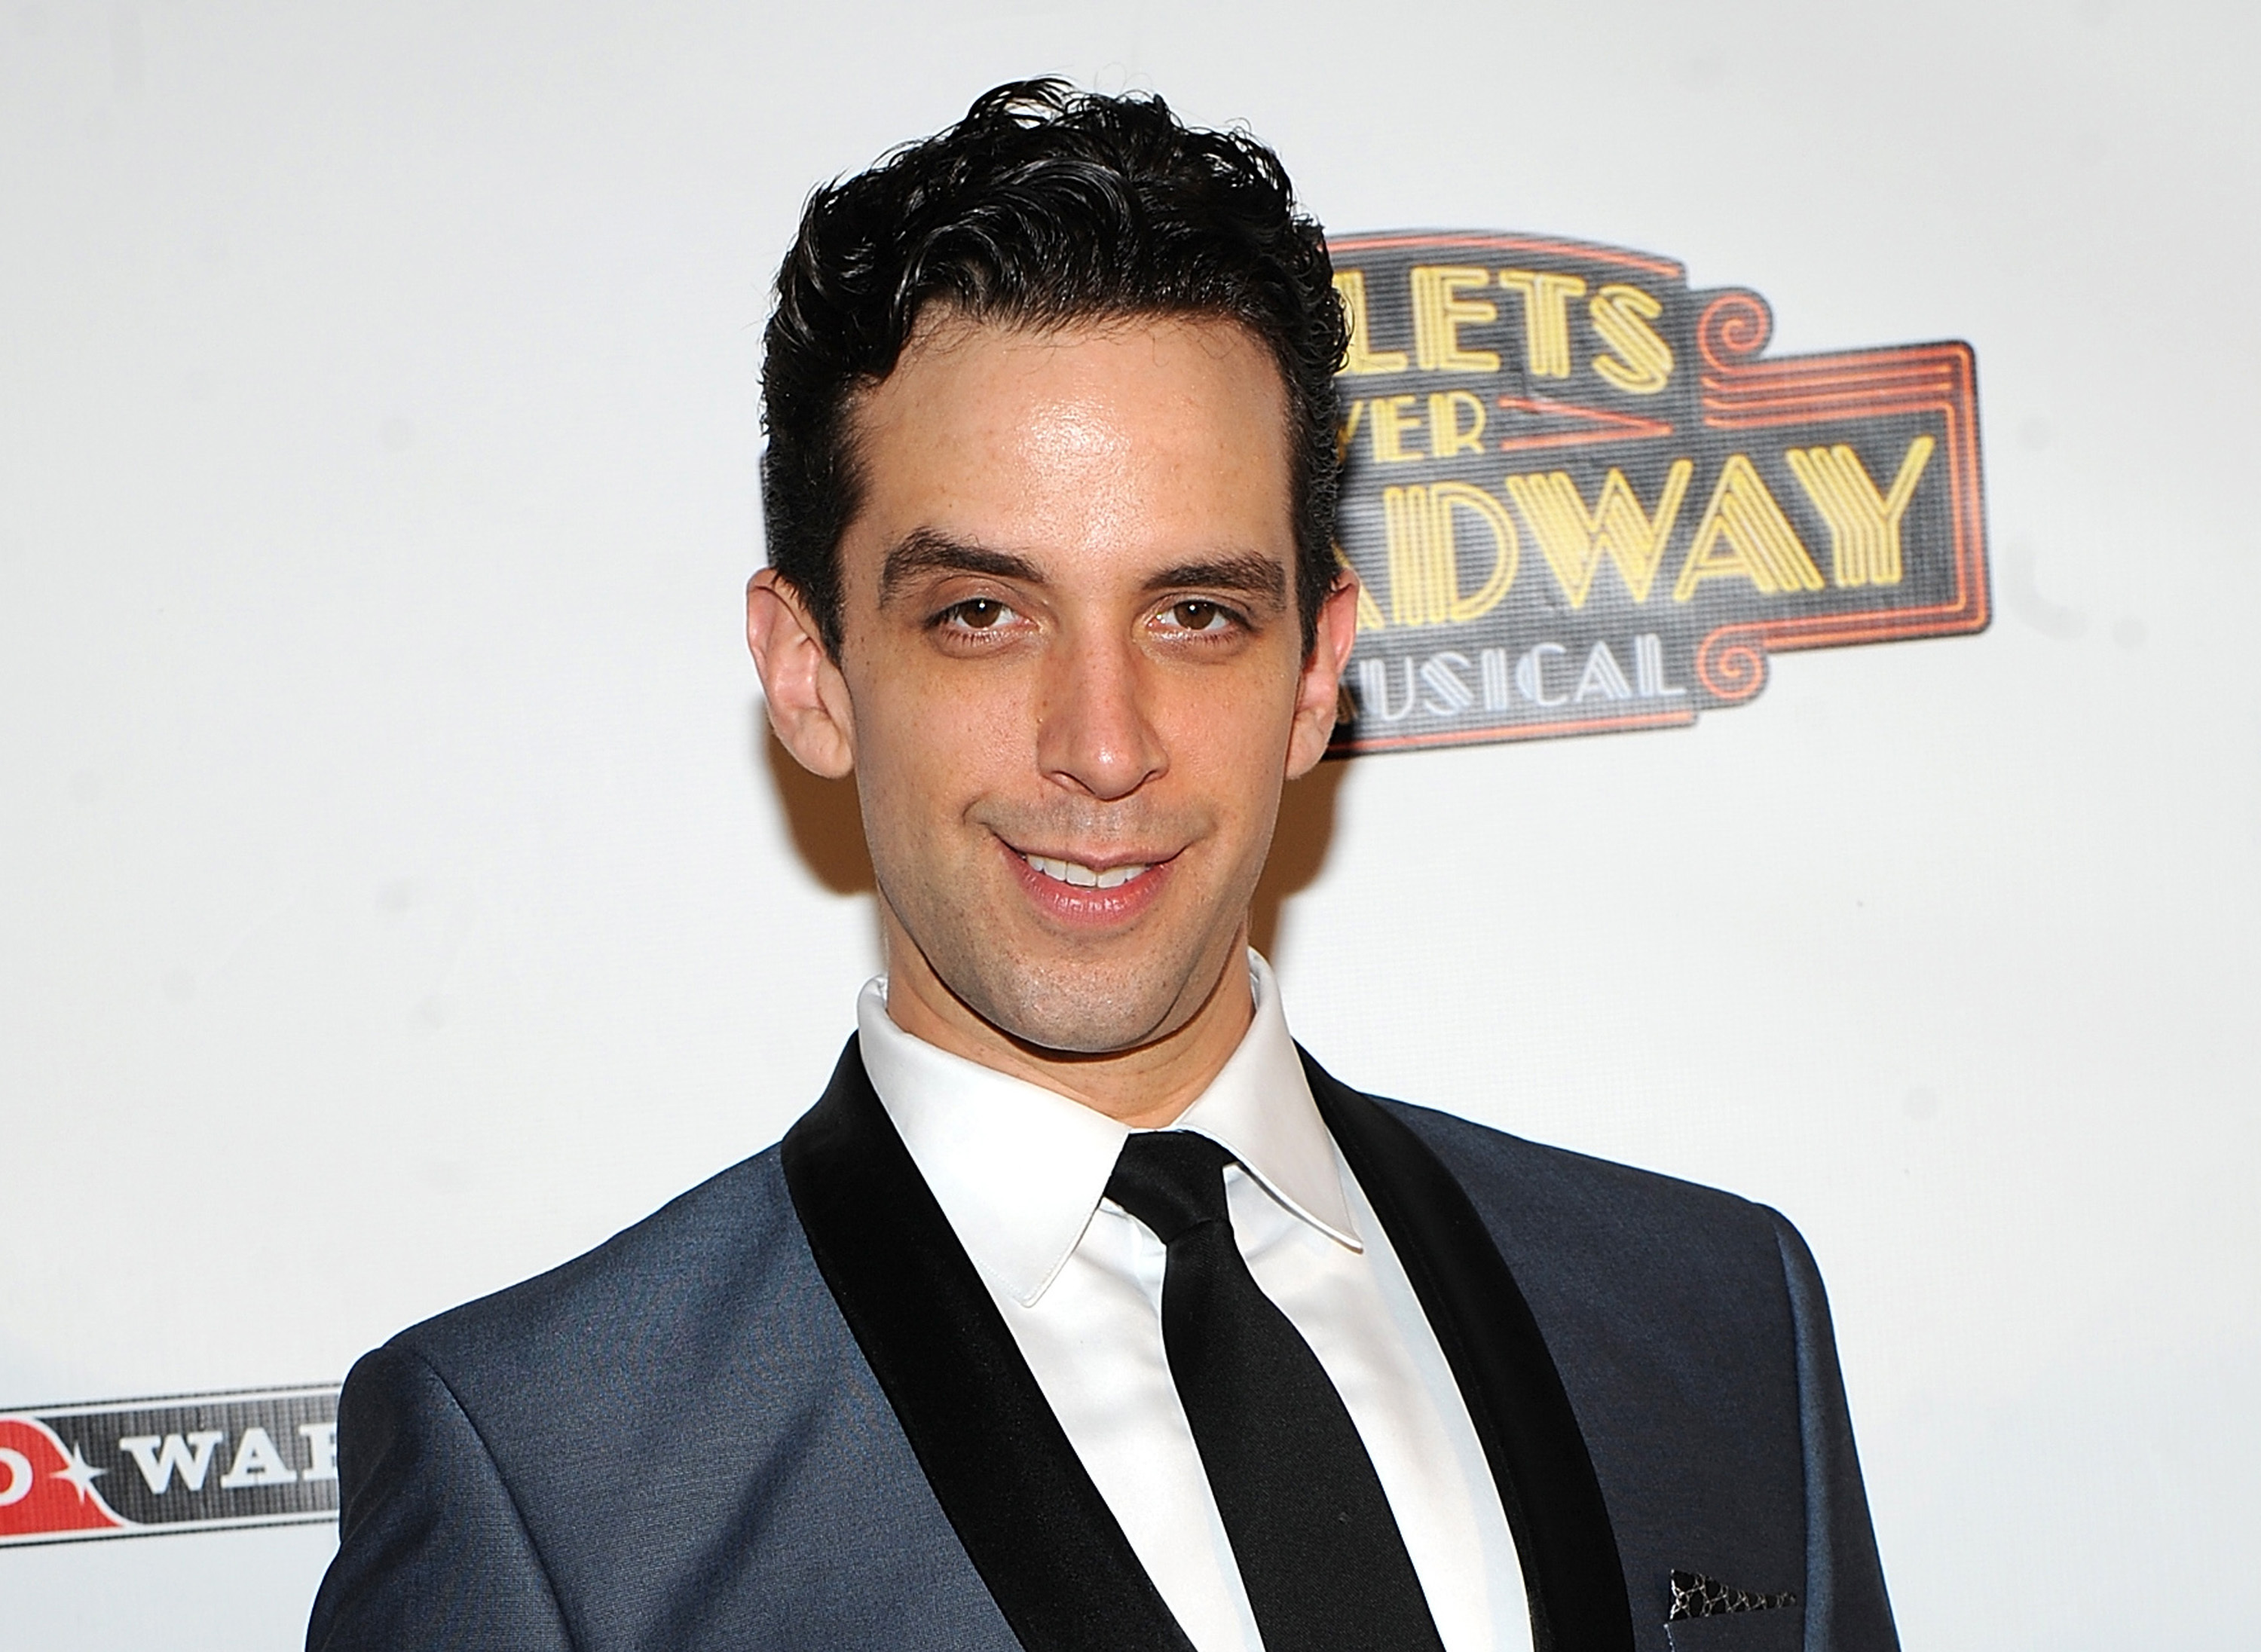 """In this April 10, 2014, file photo, actor Nick Cordero attends the after-party for the opening night of """"Bullets Over Broadway"""" in New York. Tony Award-nominated actor Cordero, who specialized in playing tough guys on Broadway in such shows as """"Waitress,"""" """"A Bronx Tale"""" and """"Bullets Over Broadway,"""" has died in Los Angeles after suffering severe medical complications after contracting the coronavirus."""